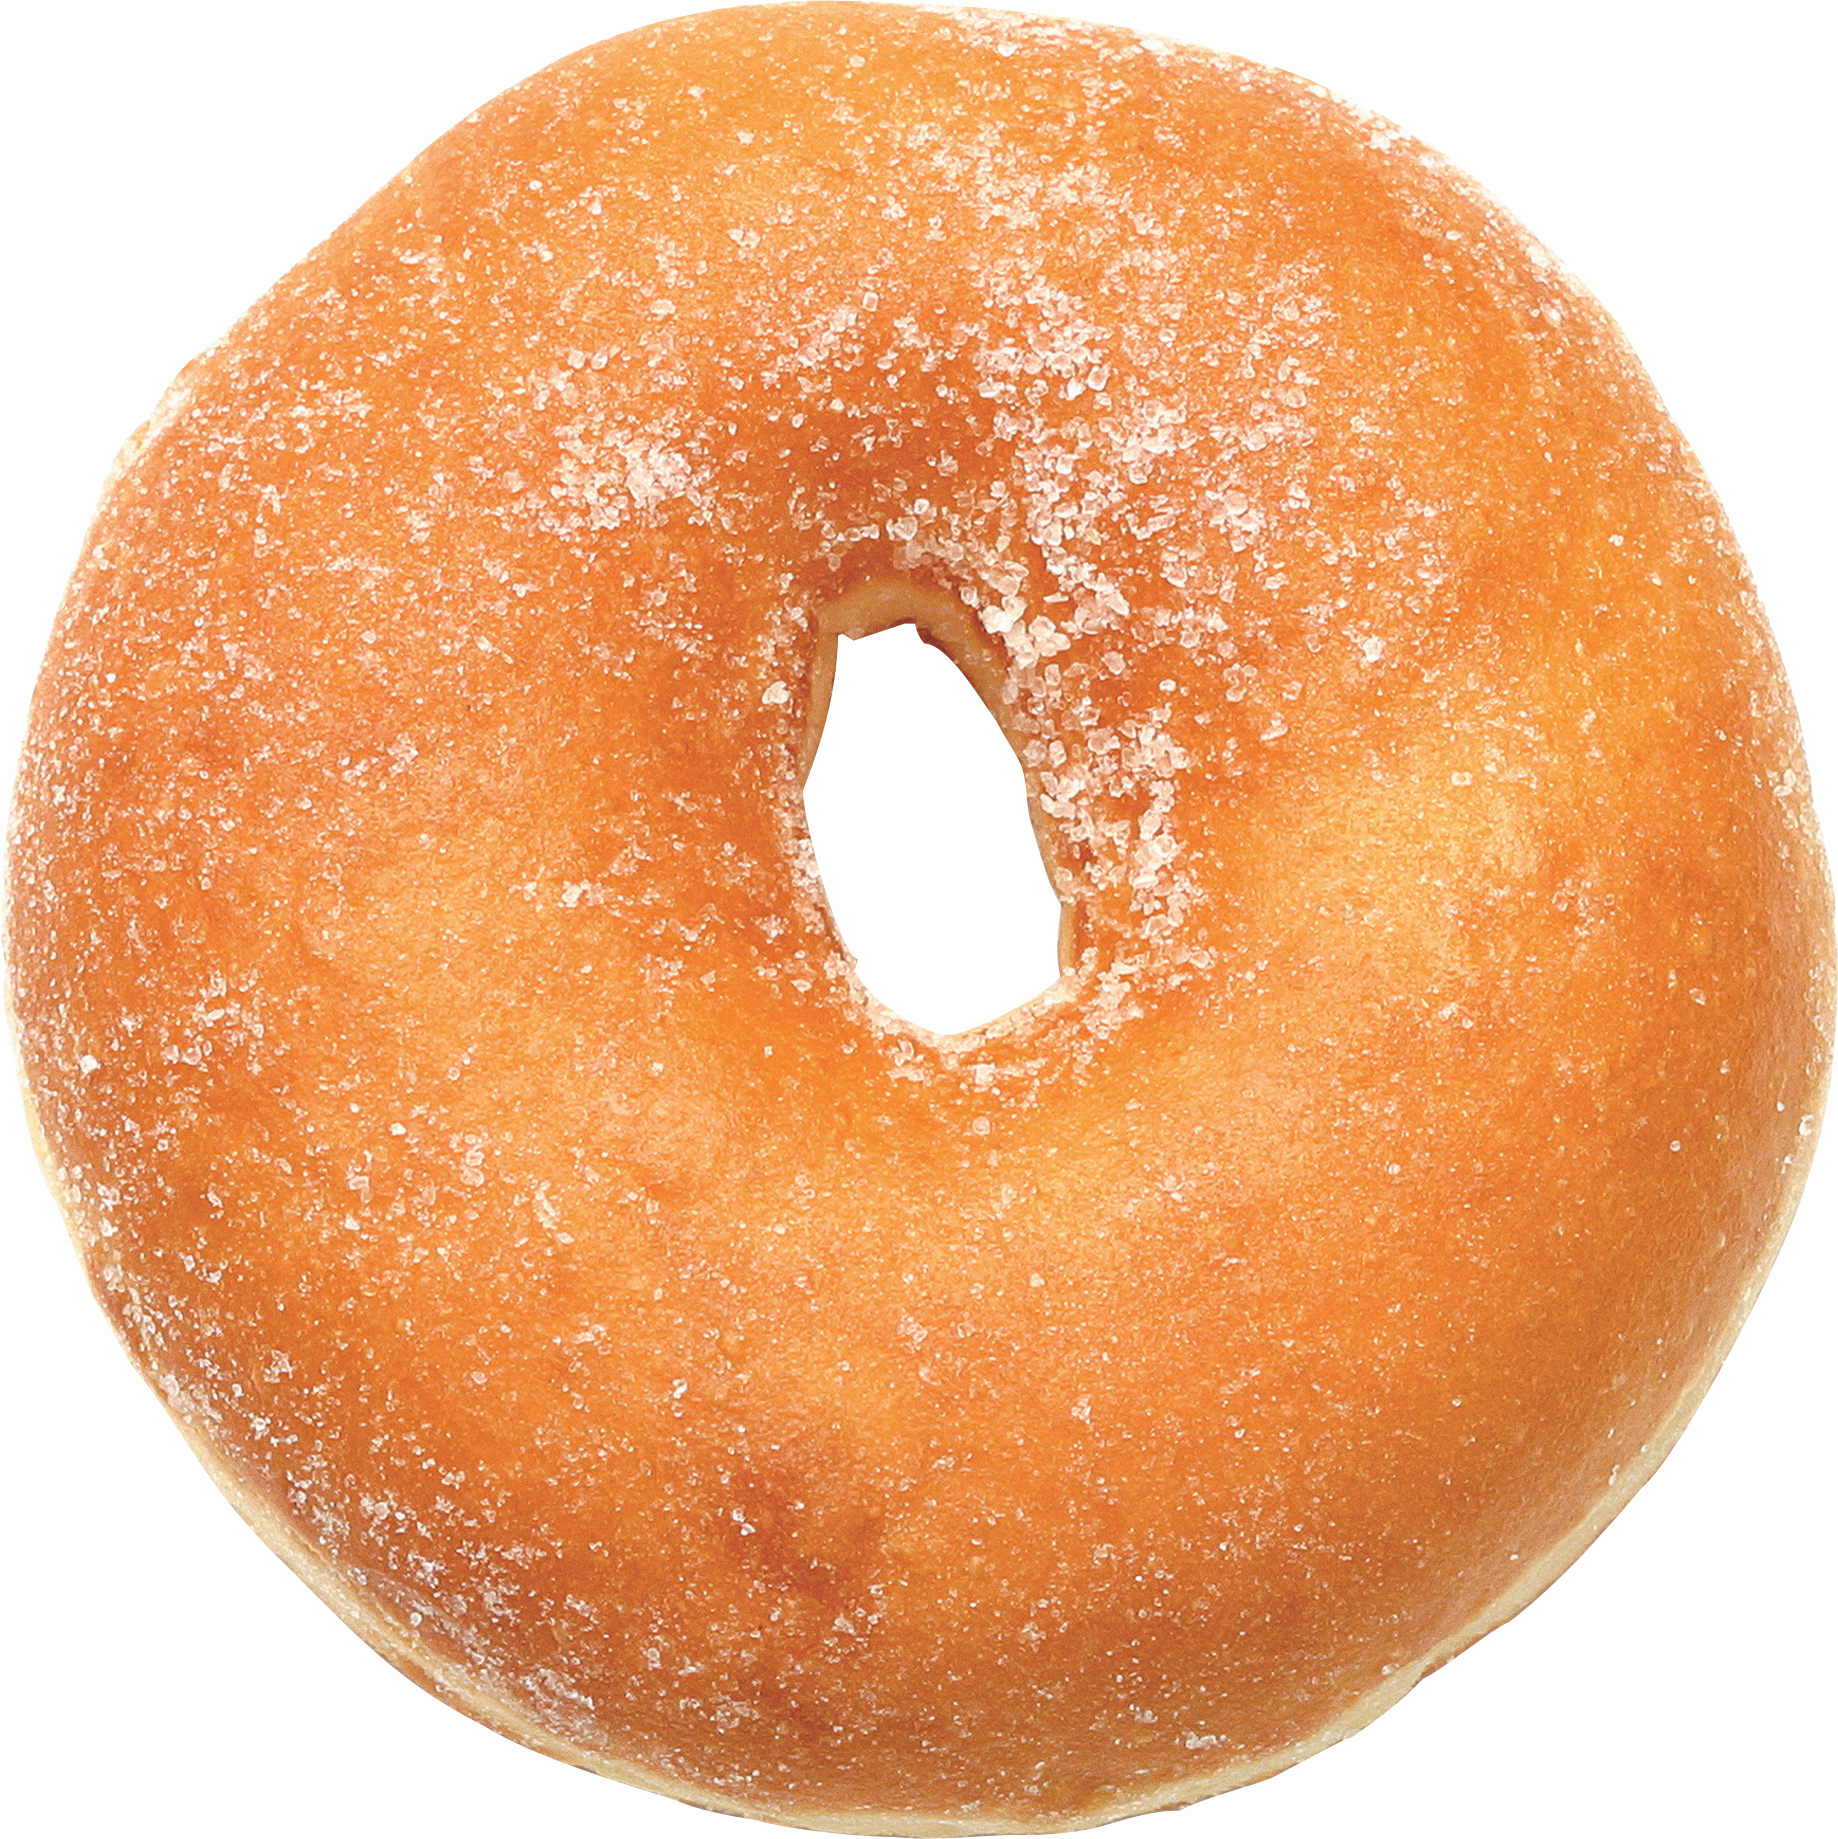 Donut clipart design. Icon web icons png